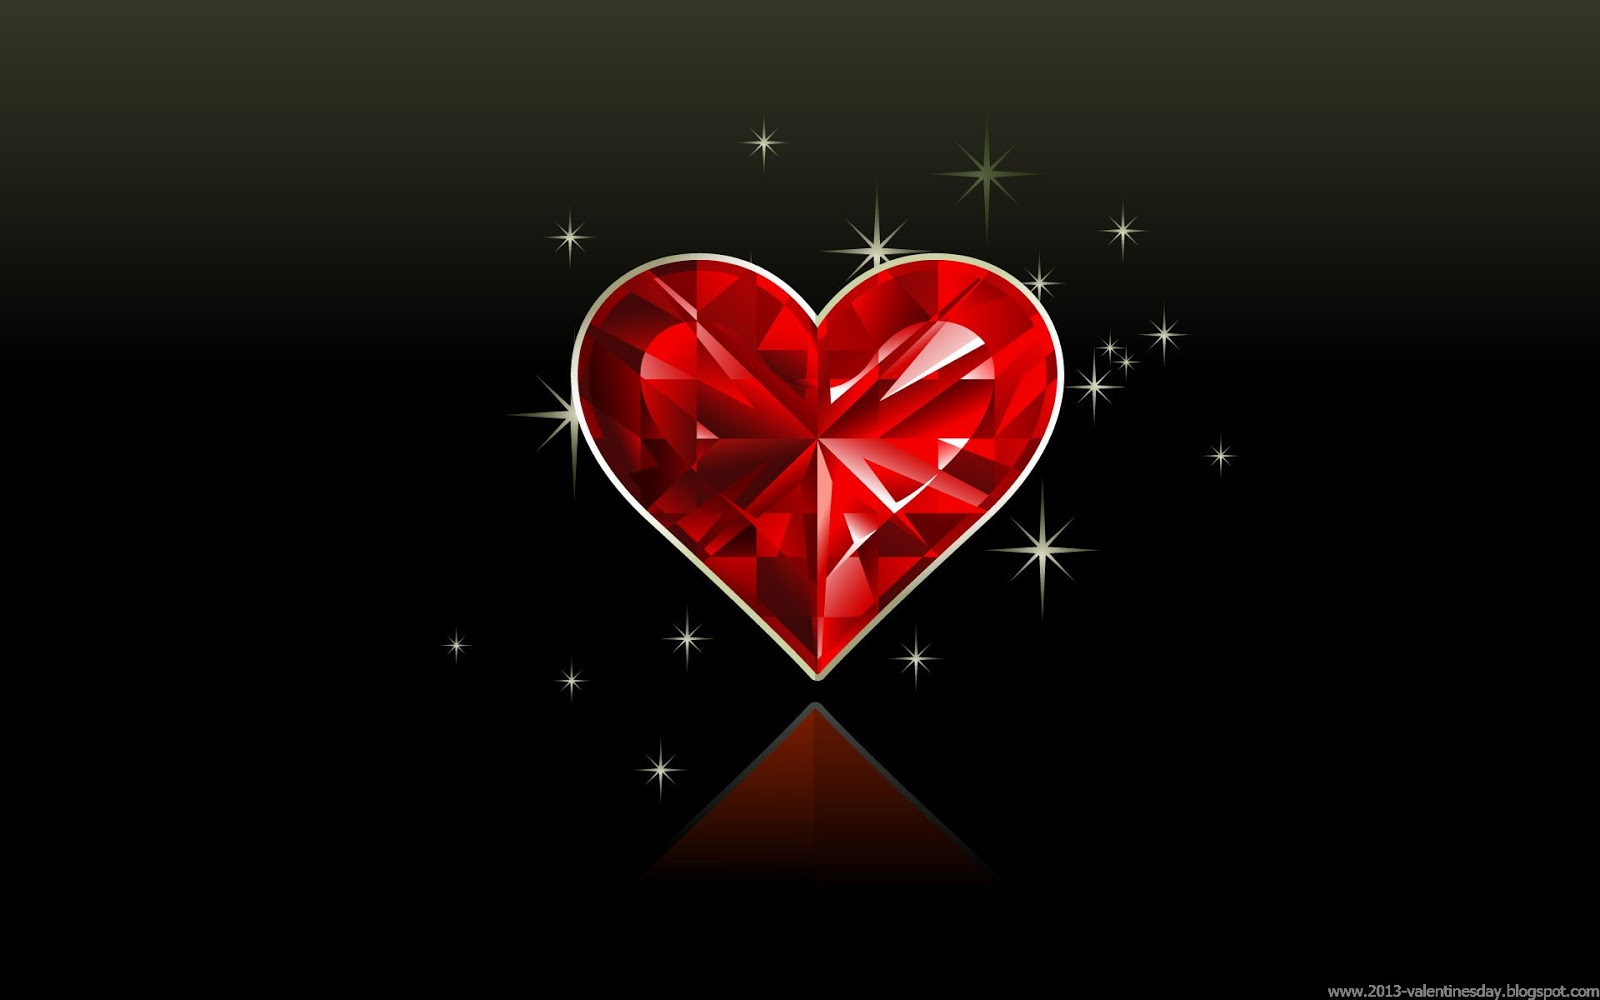 Love Greeting Hd Wallpaper : Happy Valentines Day heart and love wallpapers